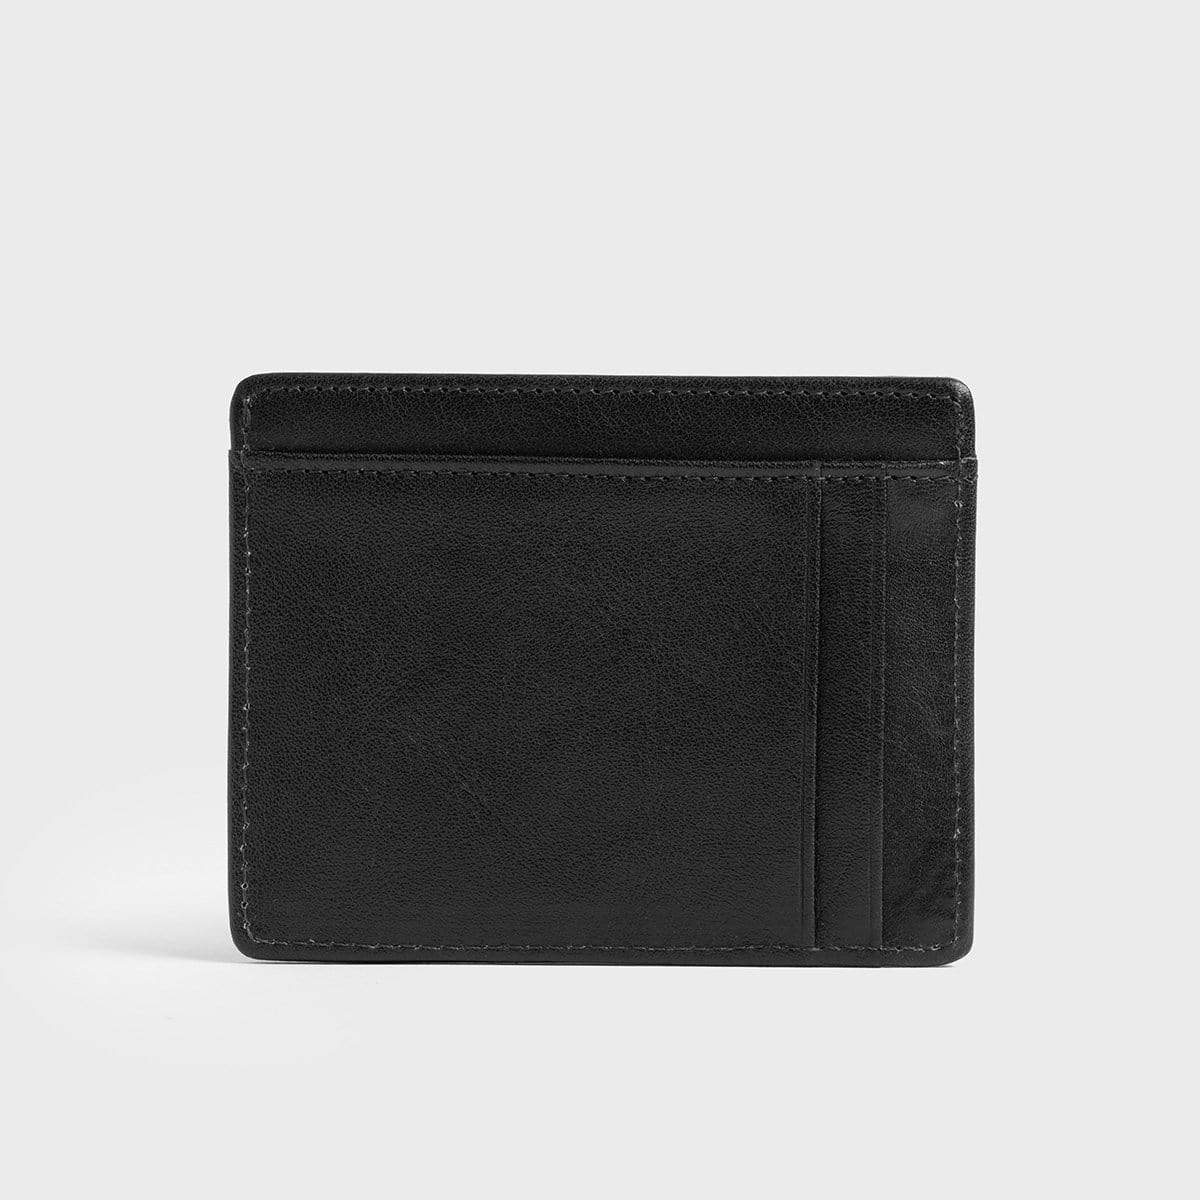 Accessories Brown Men's Leather Slim Wallet